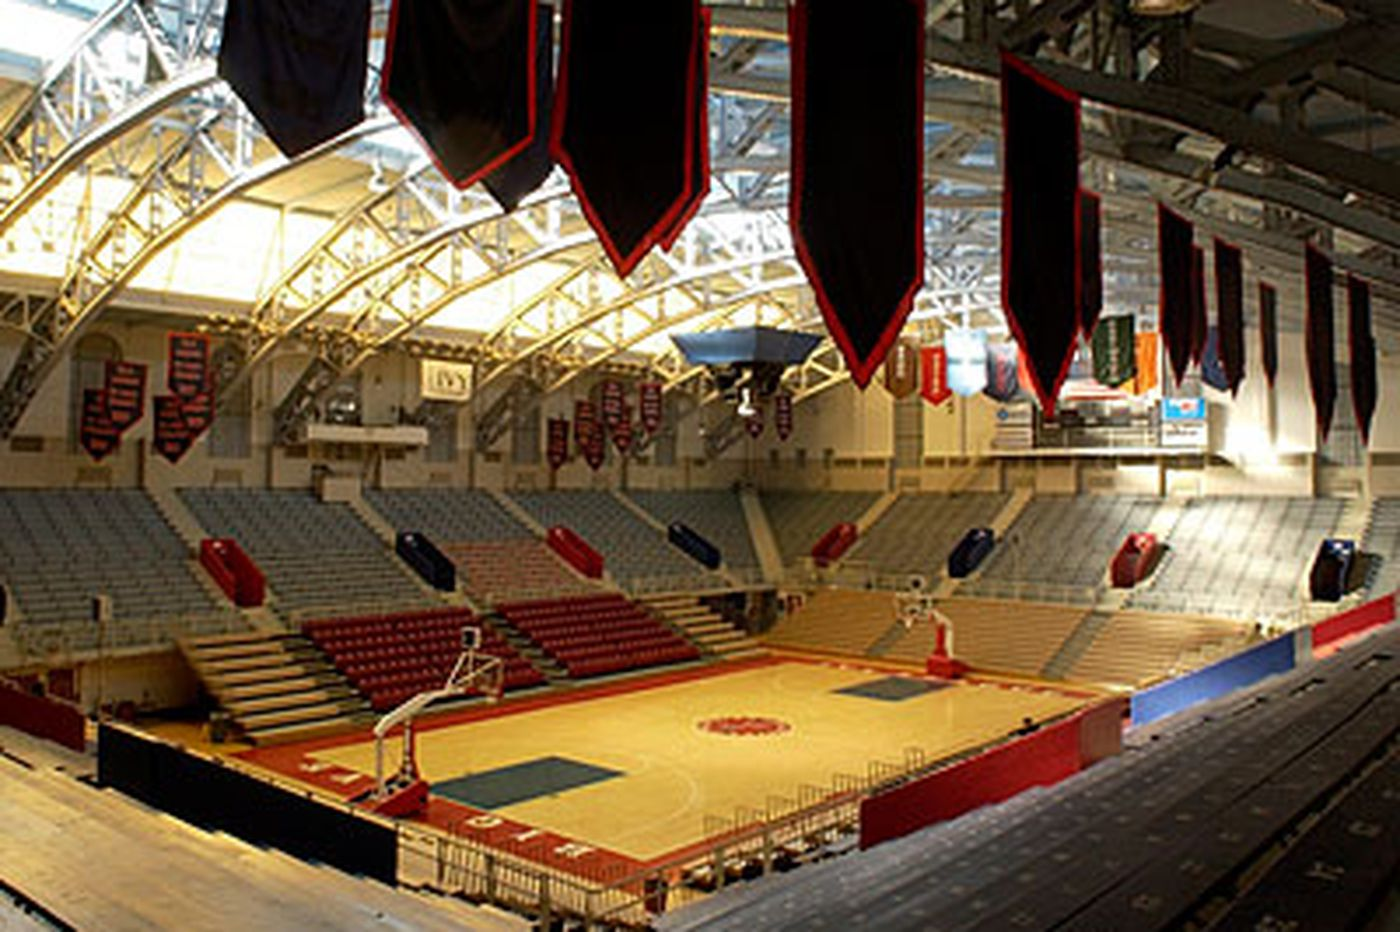 New scoreboards, same ambience at Palestra